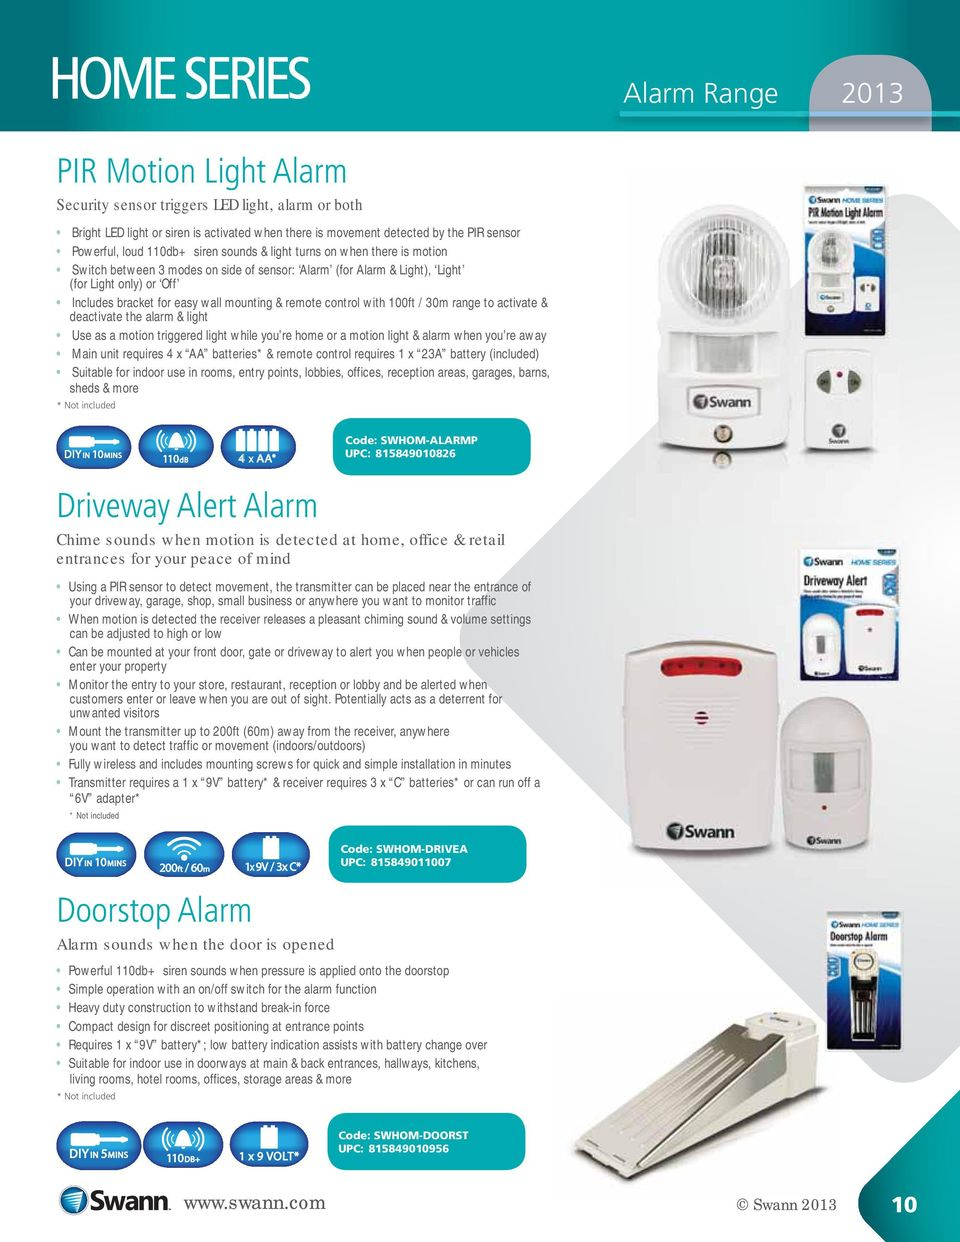 100ft / 30m range to activate & deactivate the alarm & light Use as a motion triggered light while you re home or a motion light & alarm when you re away Main unit requires 4 x AA batteries* & remote